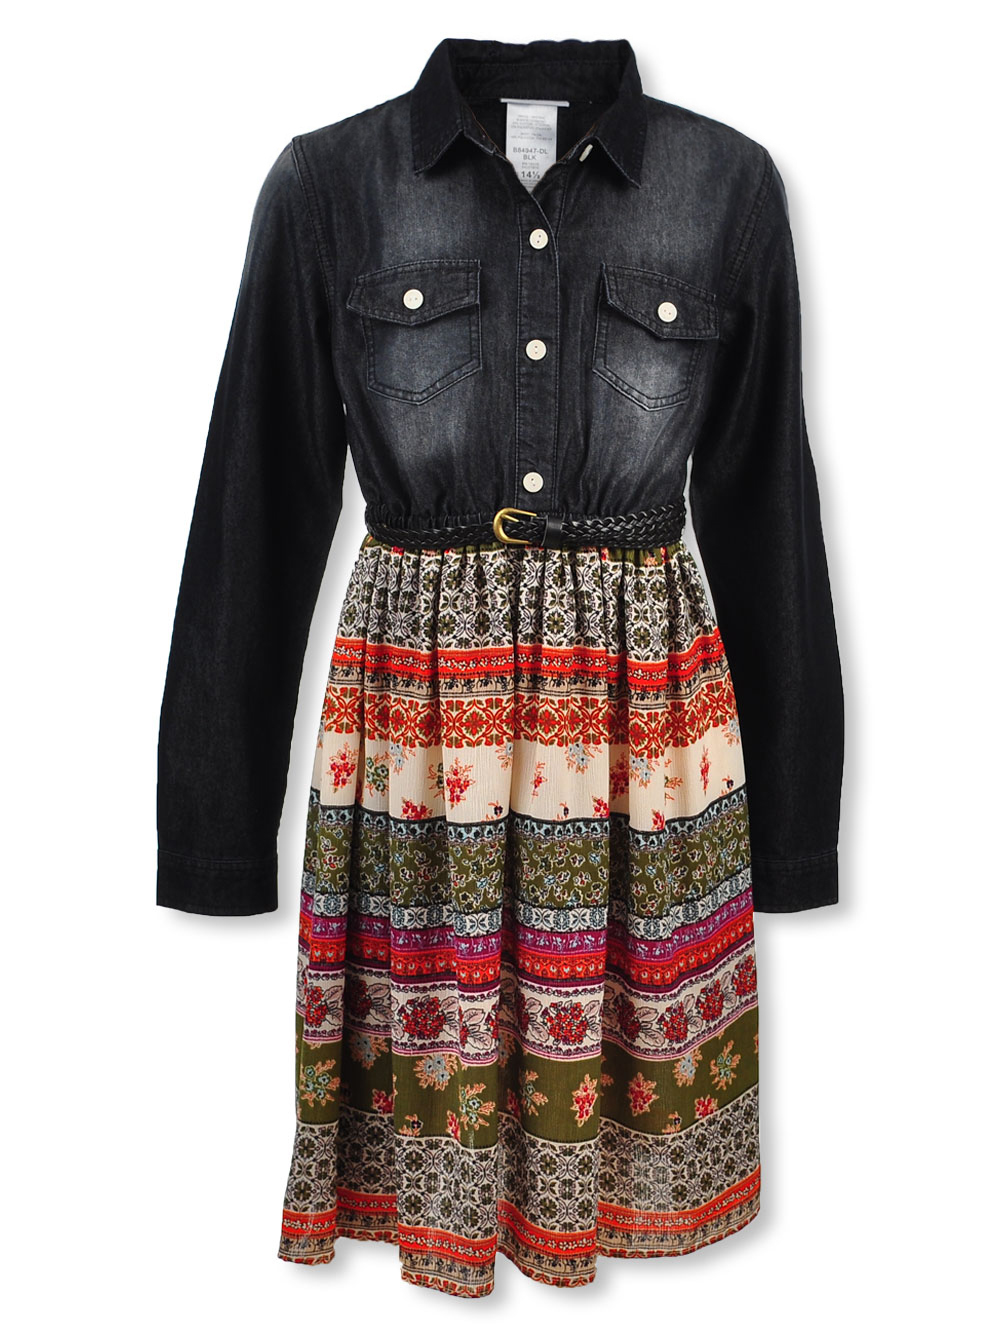 Plus Size Floral Blocked Belted Dress by Bonnie Jean in Black